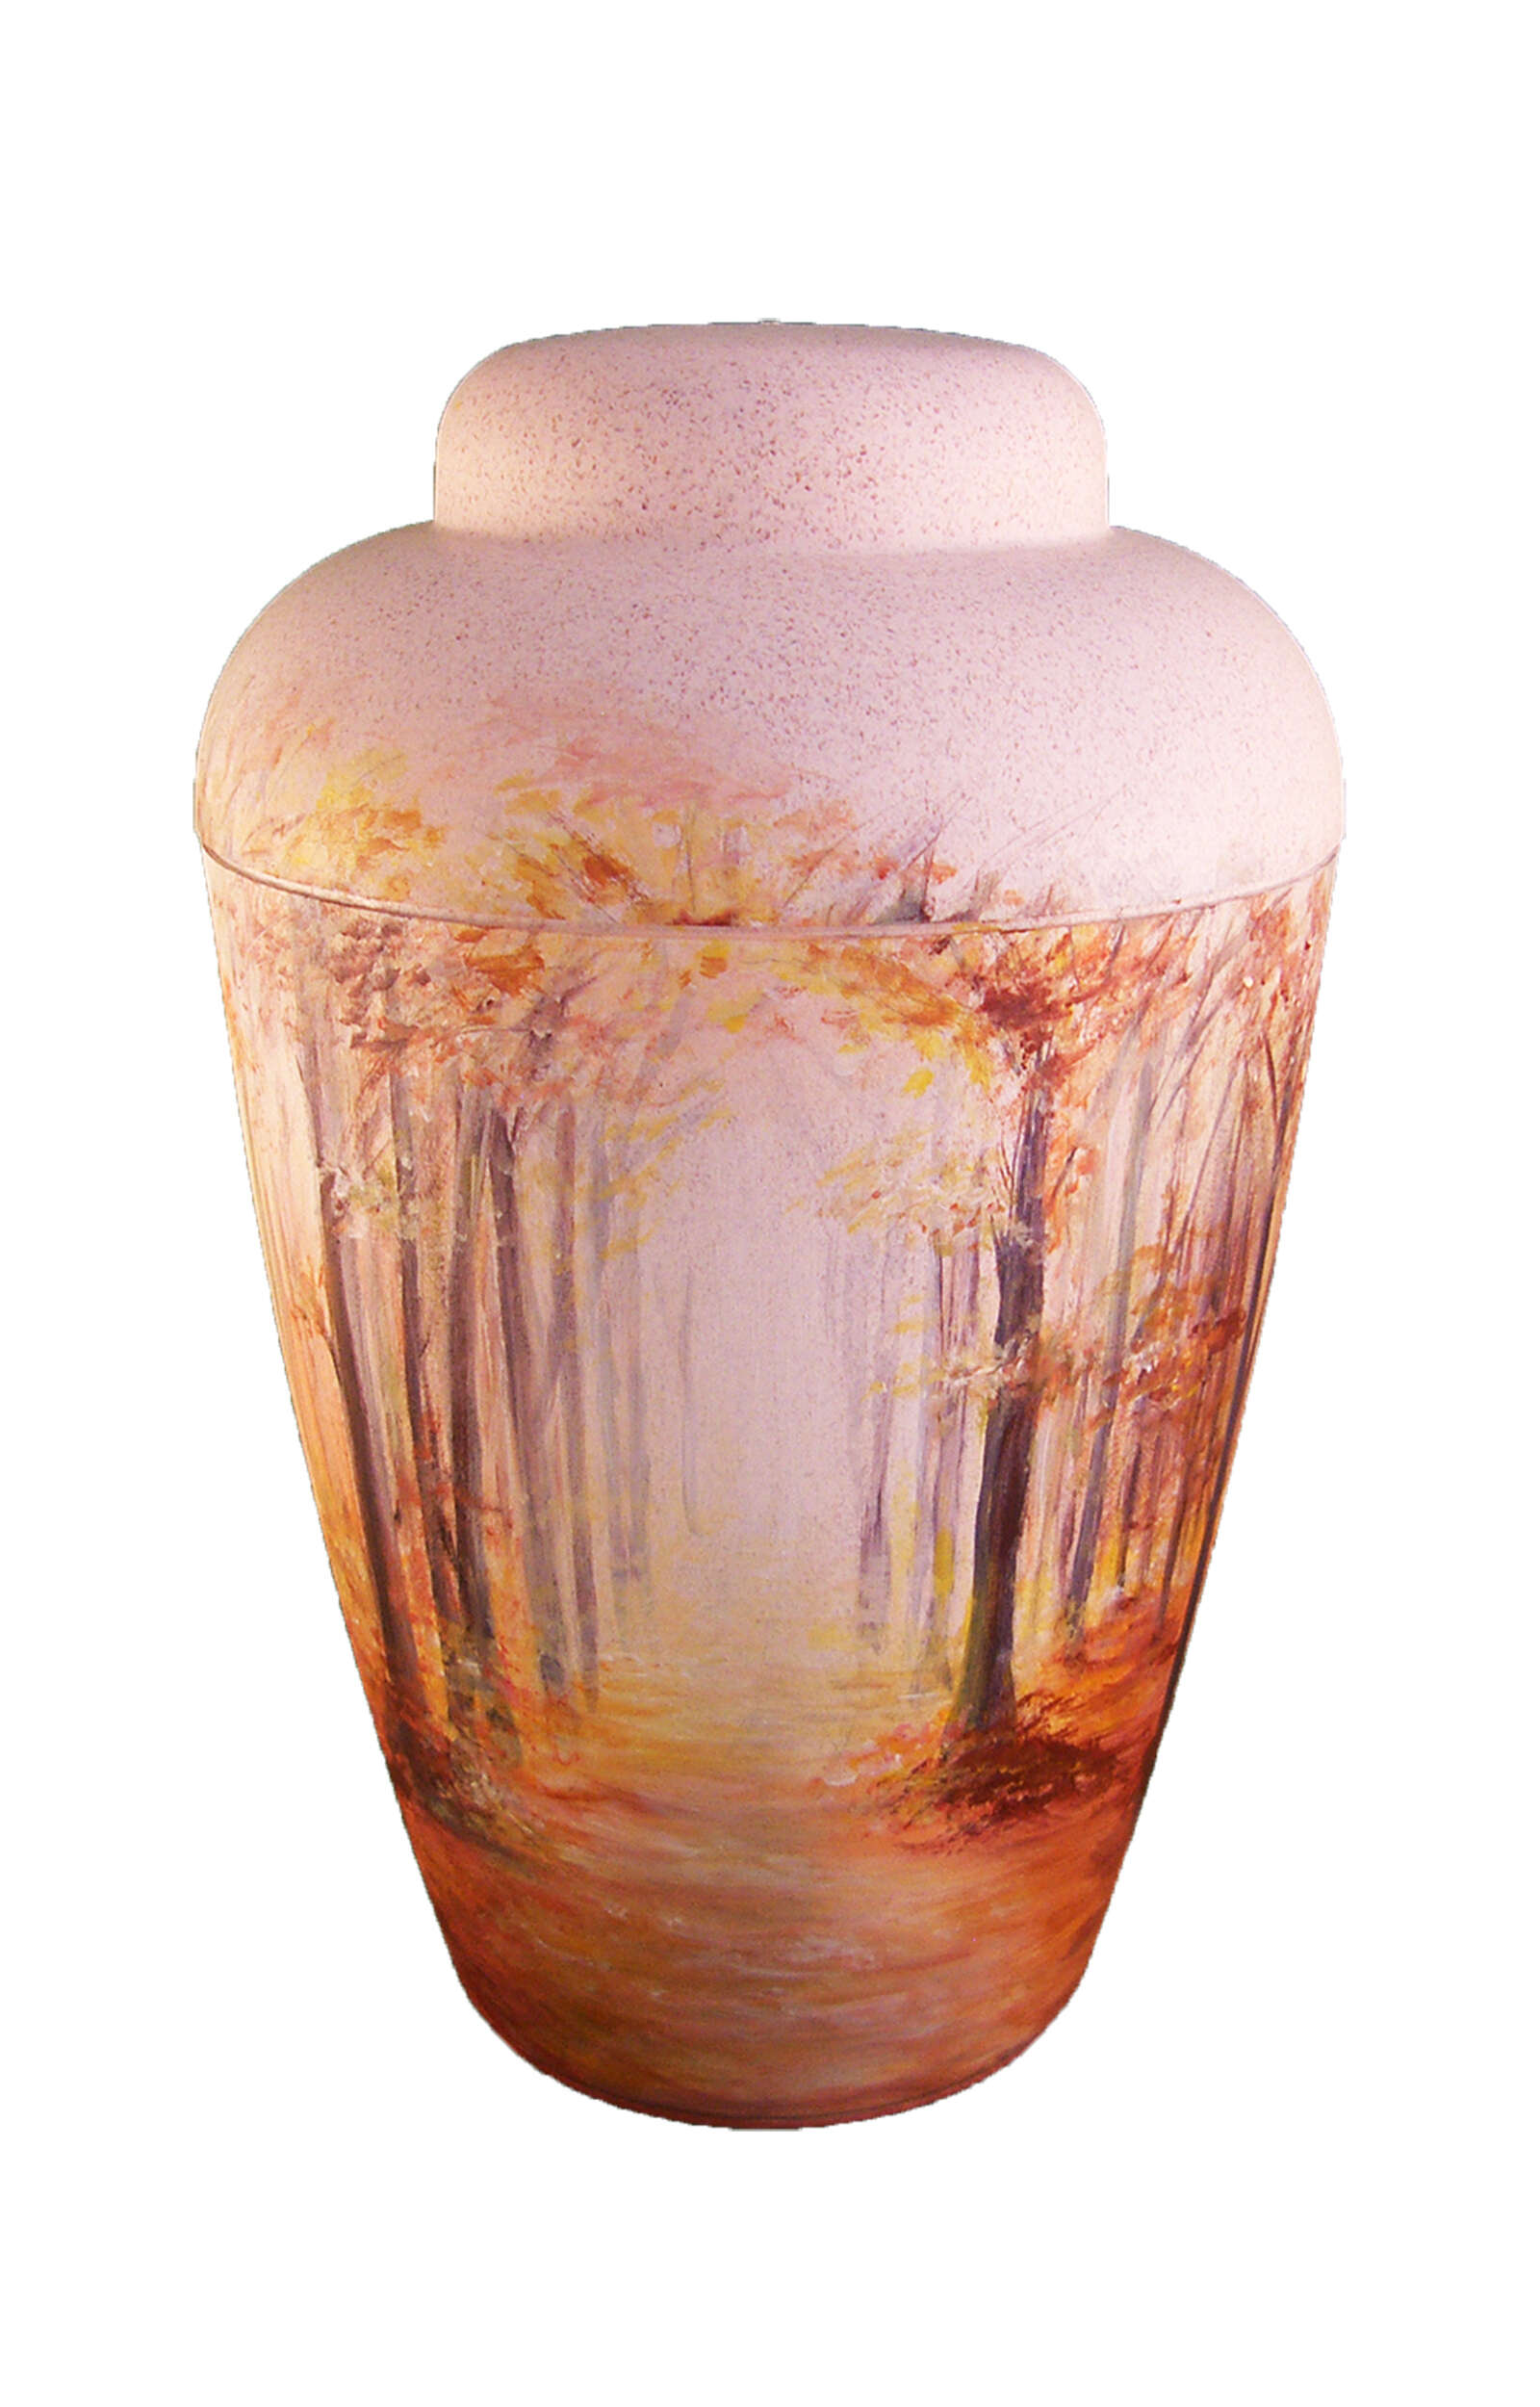 en BW1401 artist urn forest light funeral urns for human ashes cream white autumn